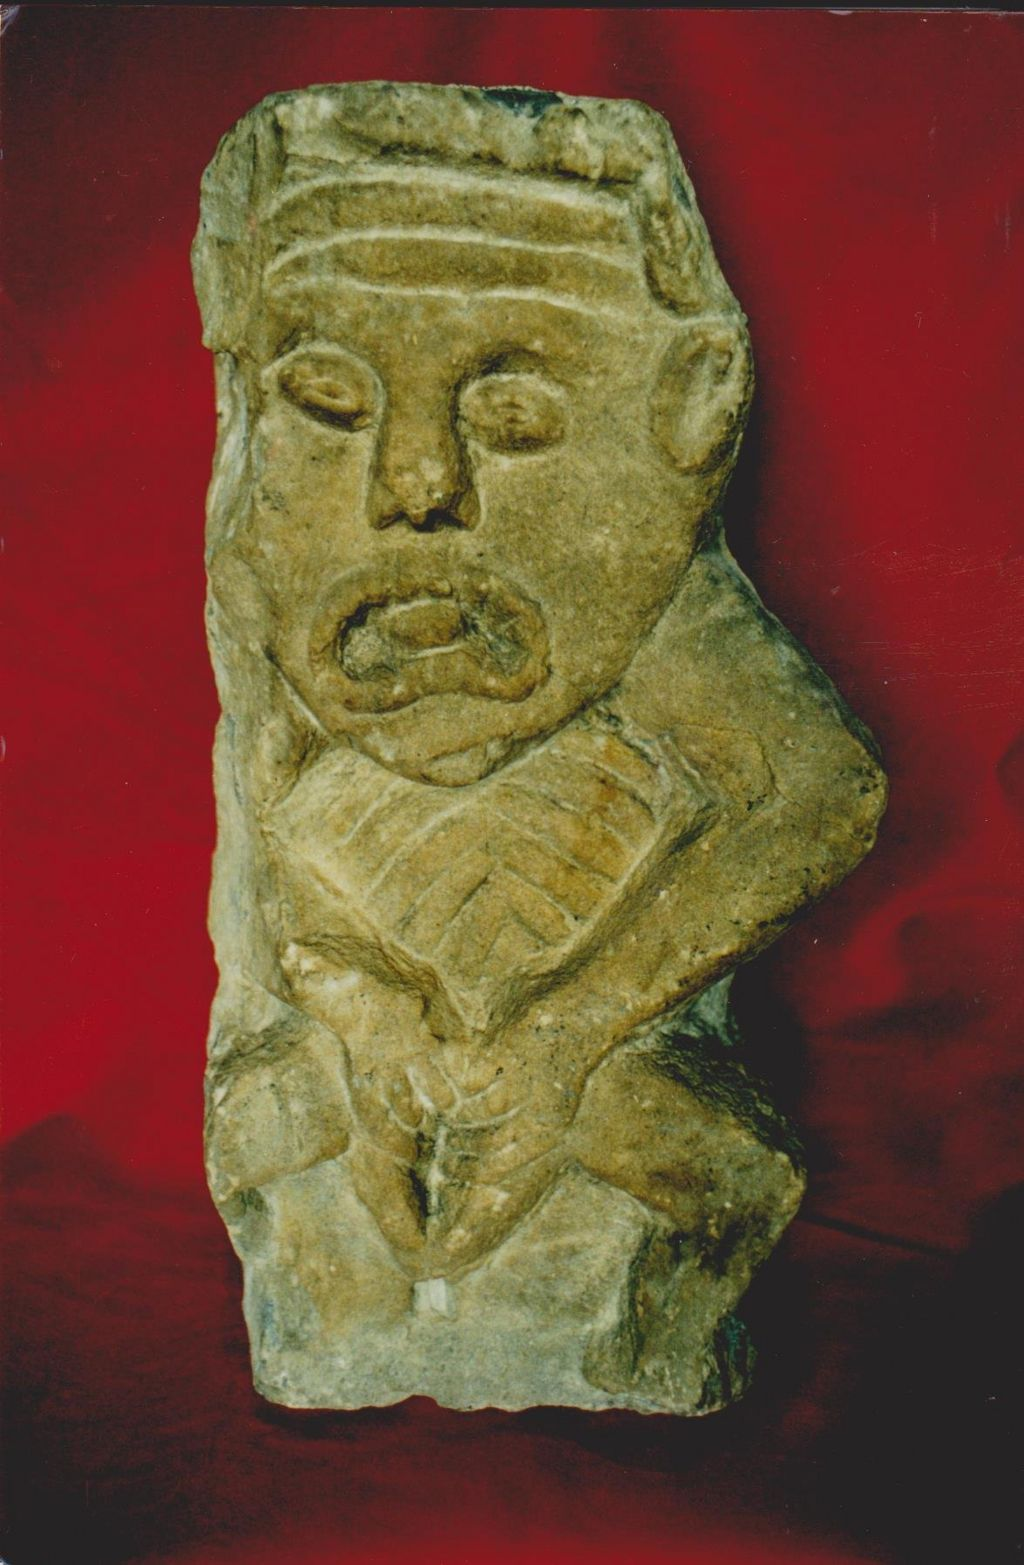 Sheela na gigs ireland s mysterious genital sculptures